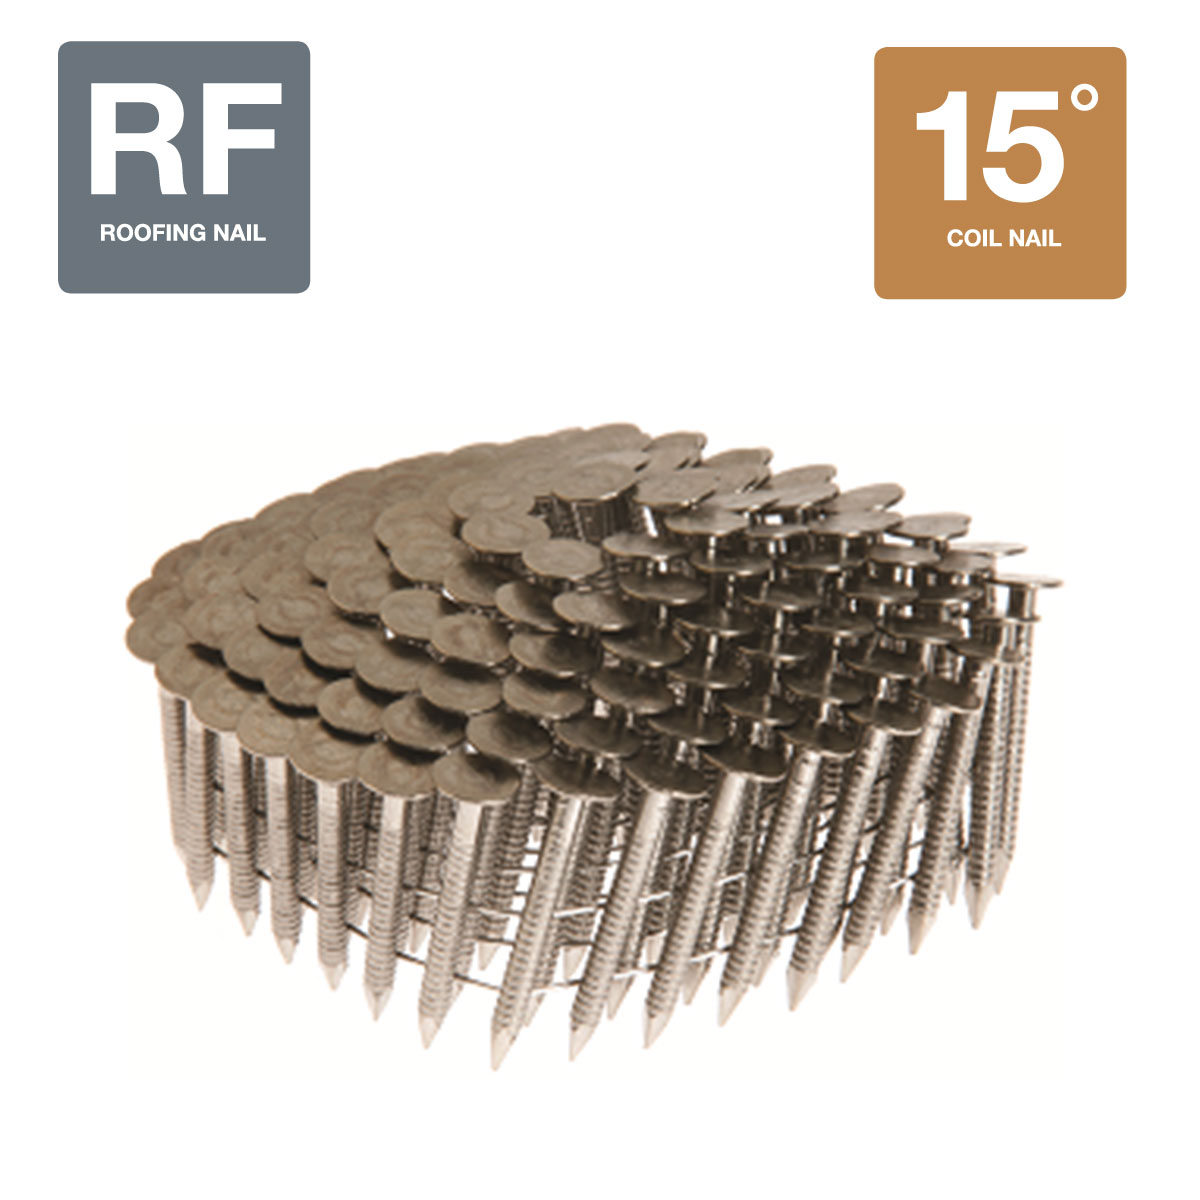 """1-1/4"""" x 0.120"""" 15 Degree Collated Ring Shank 304 Stainless Steel Roofing Nails - 7200 Count Box"""